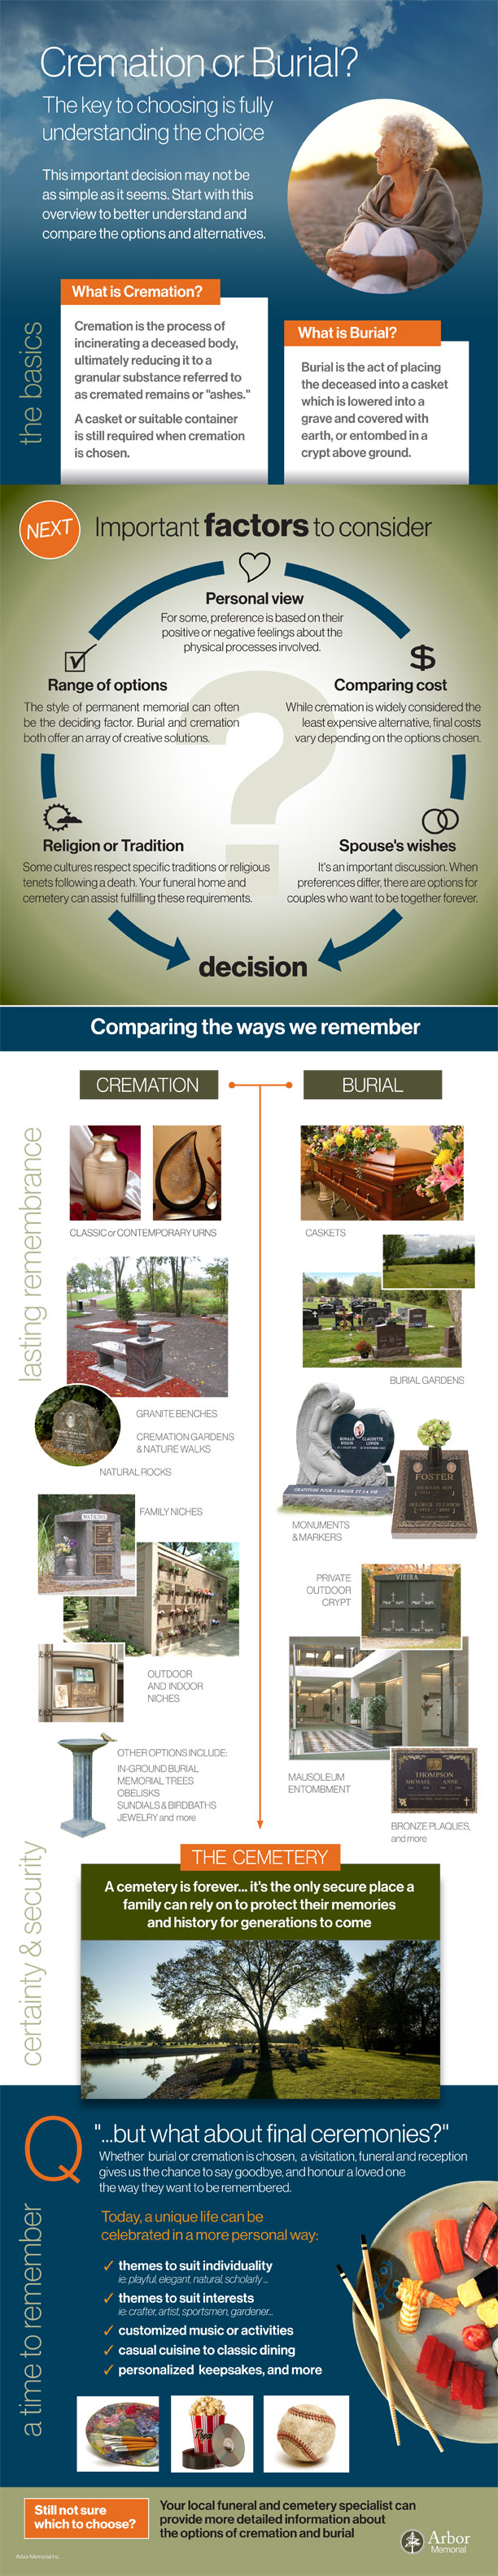 Cremation or Burial? The key to choosing is fully understanding the choice